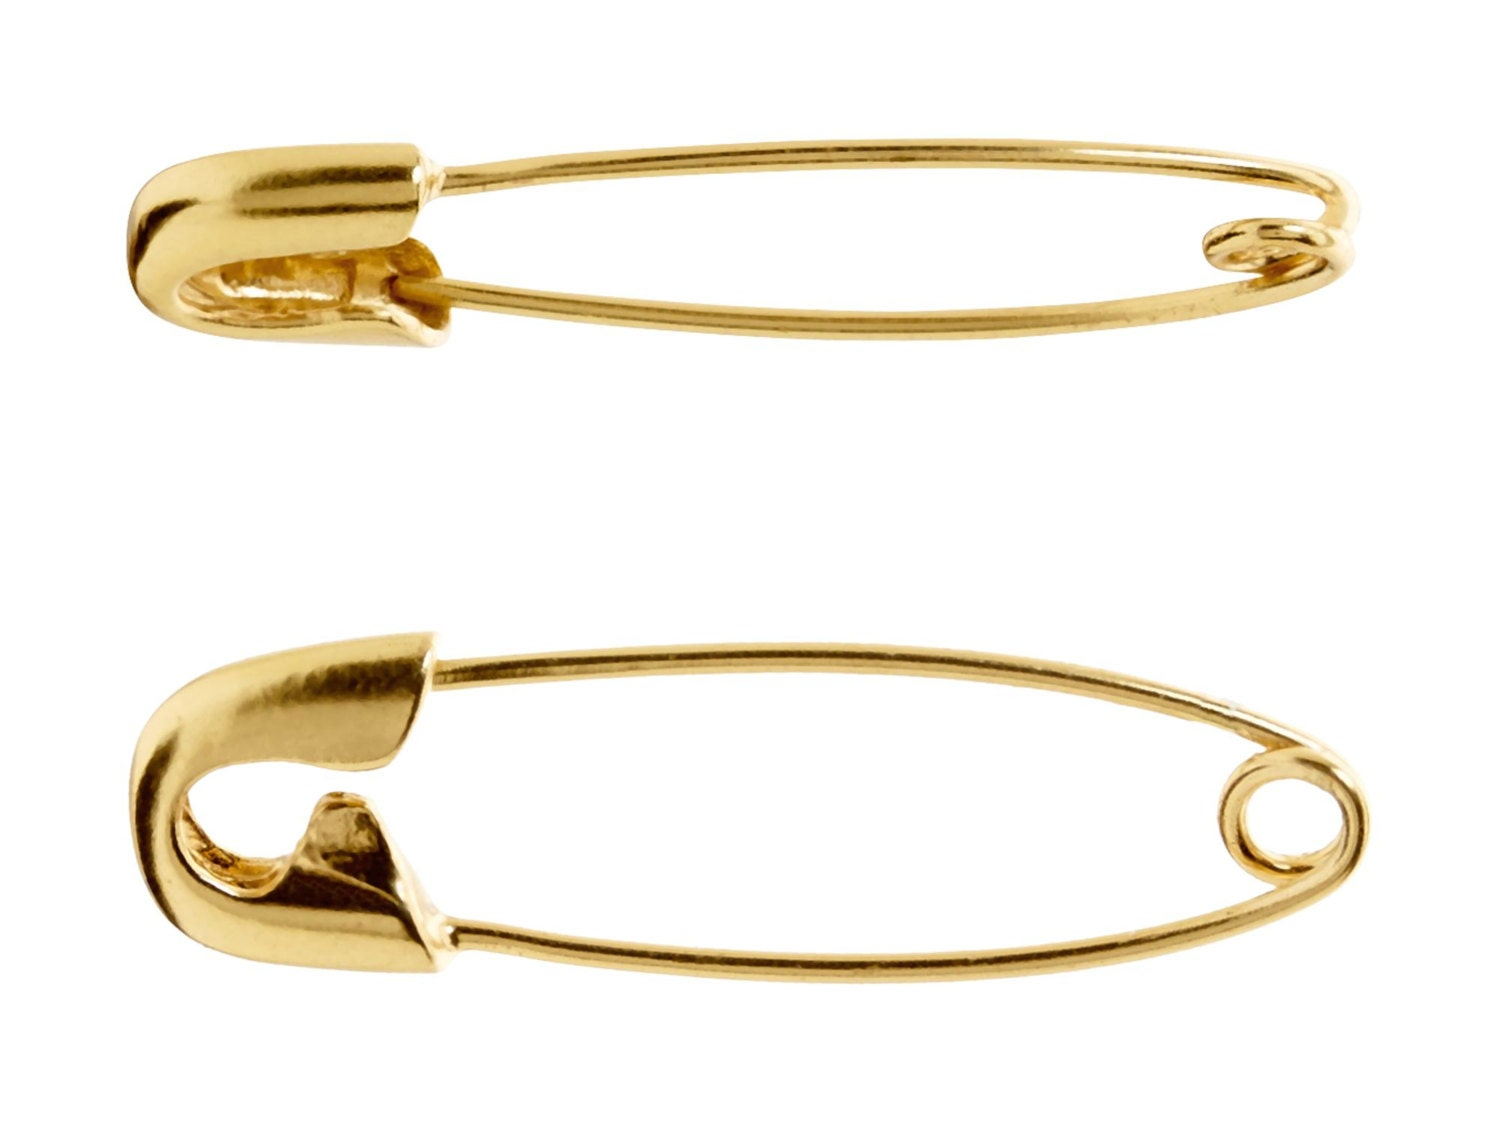 1 25 Inch Gold Safety Pin Earringscartilage Earringsgift For